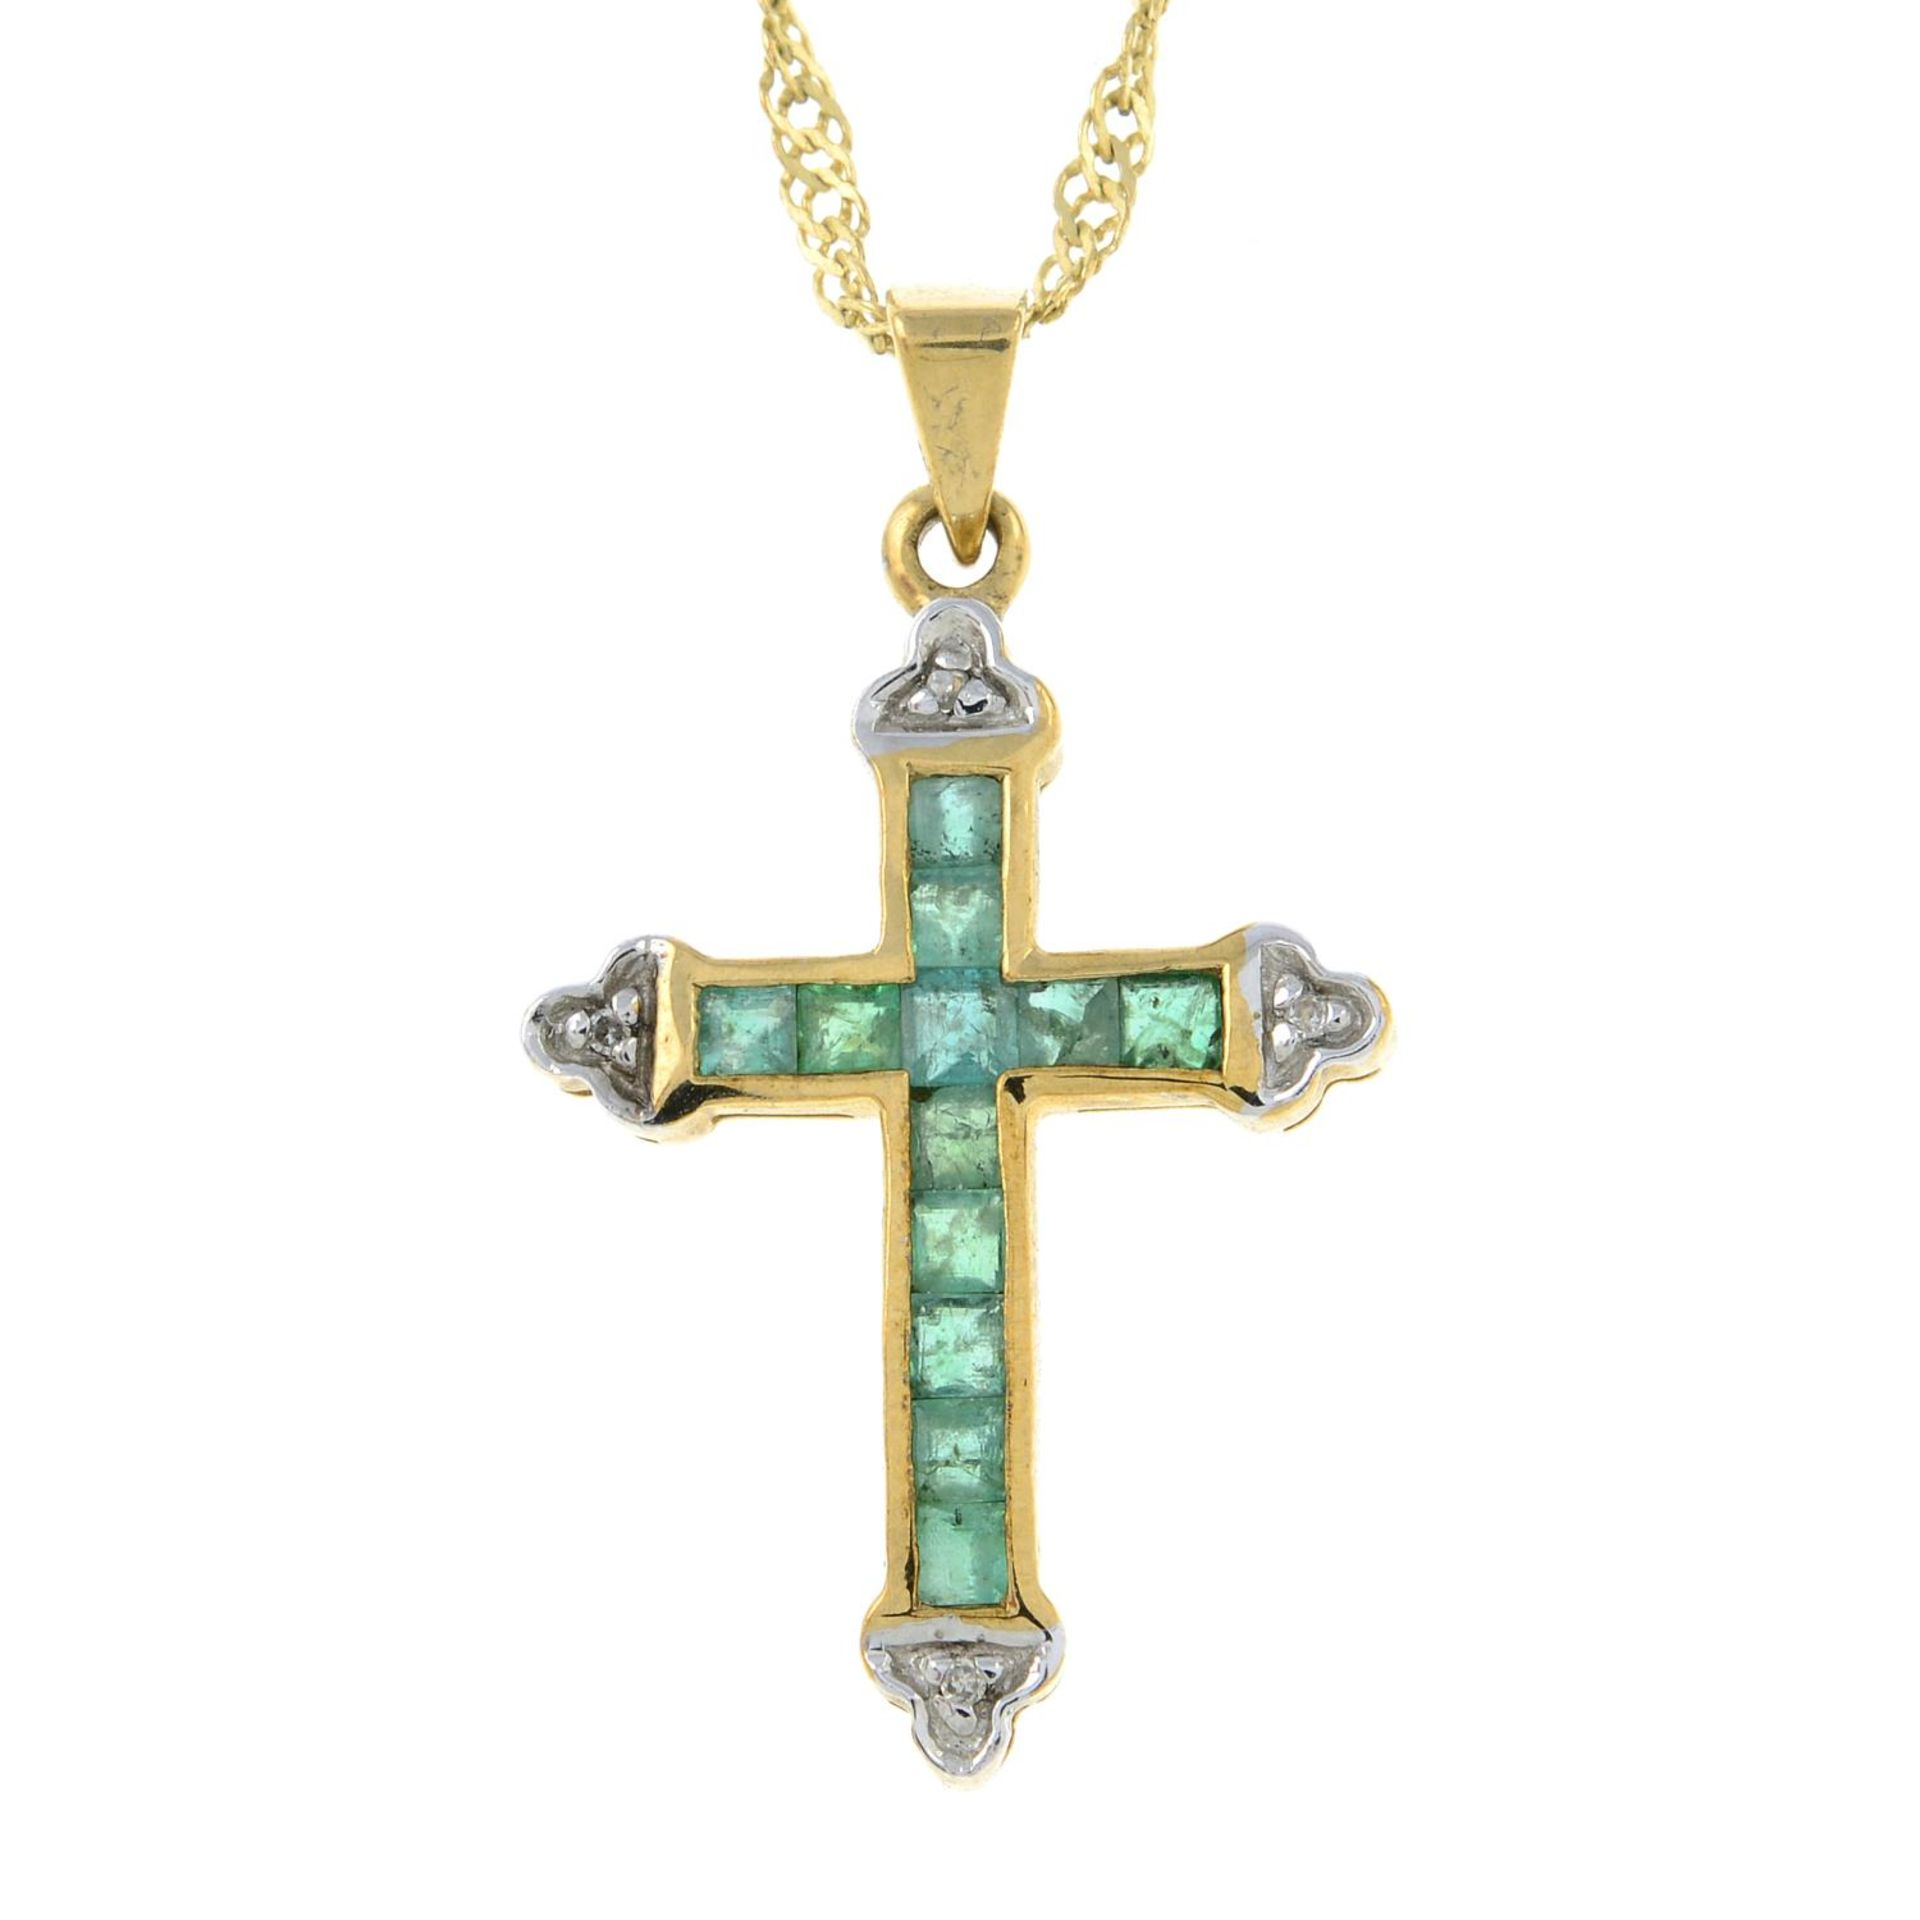 A 9ct gold emerald and diamond cross pendant, with 9ct gold chain.Hallmarks for 9ct gold.